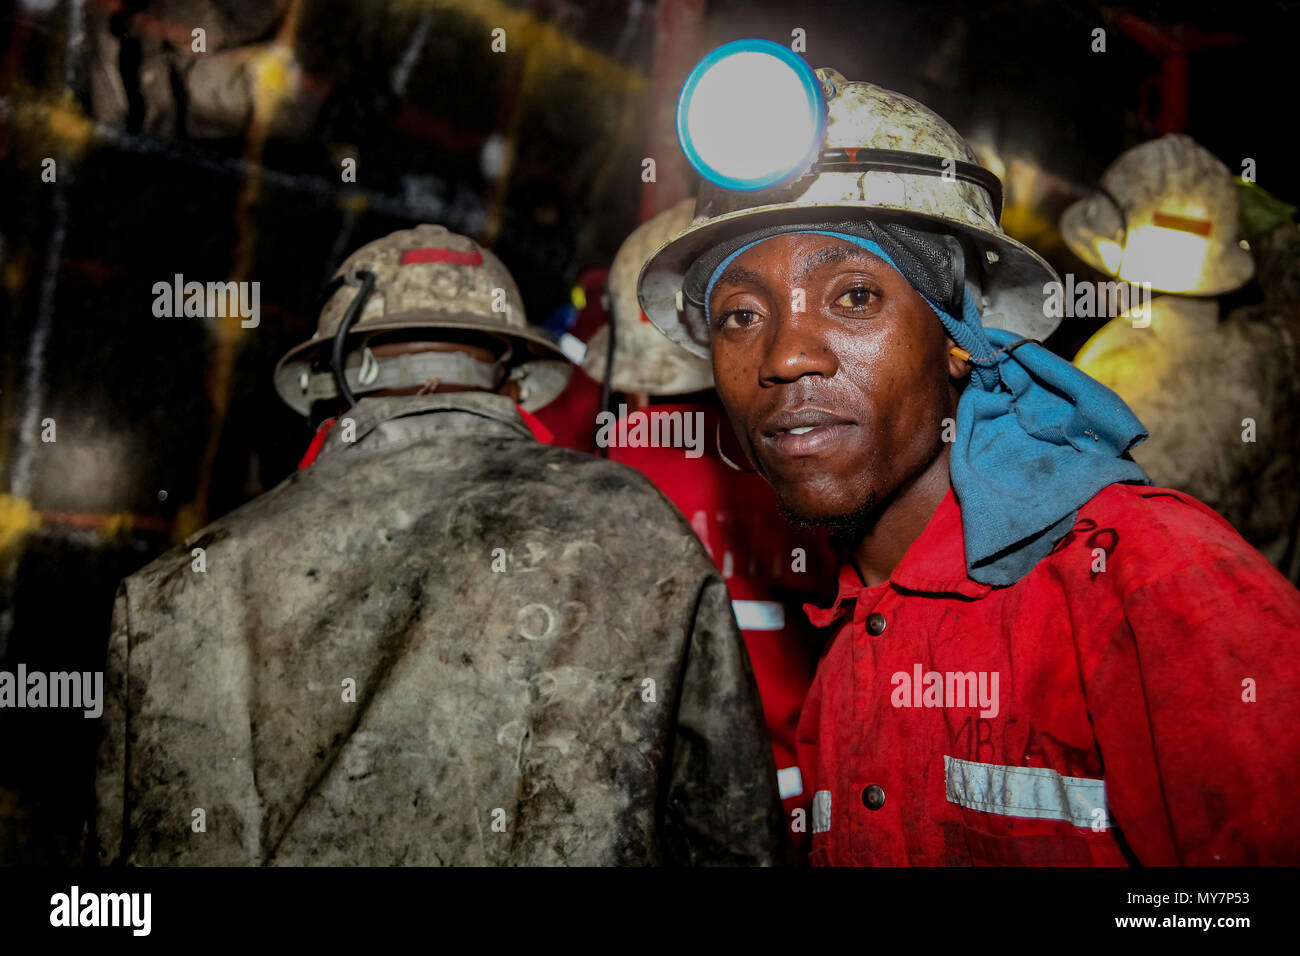 Rustenburg, South Africa, May 23, 2011, Underground Platinum Chrome miners drilling holes in rock for blasting. Holes used for dynamite placement - Stock Image